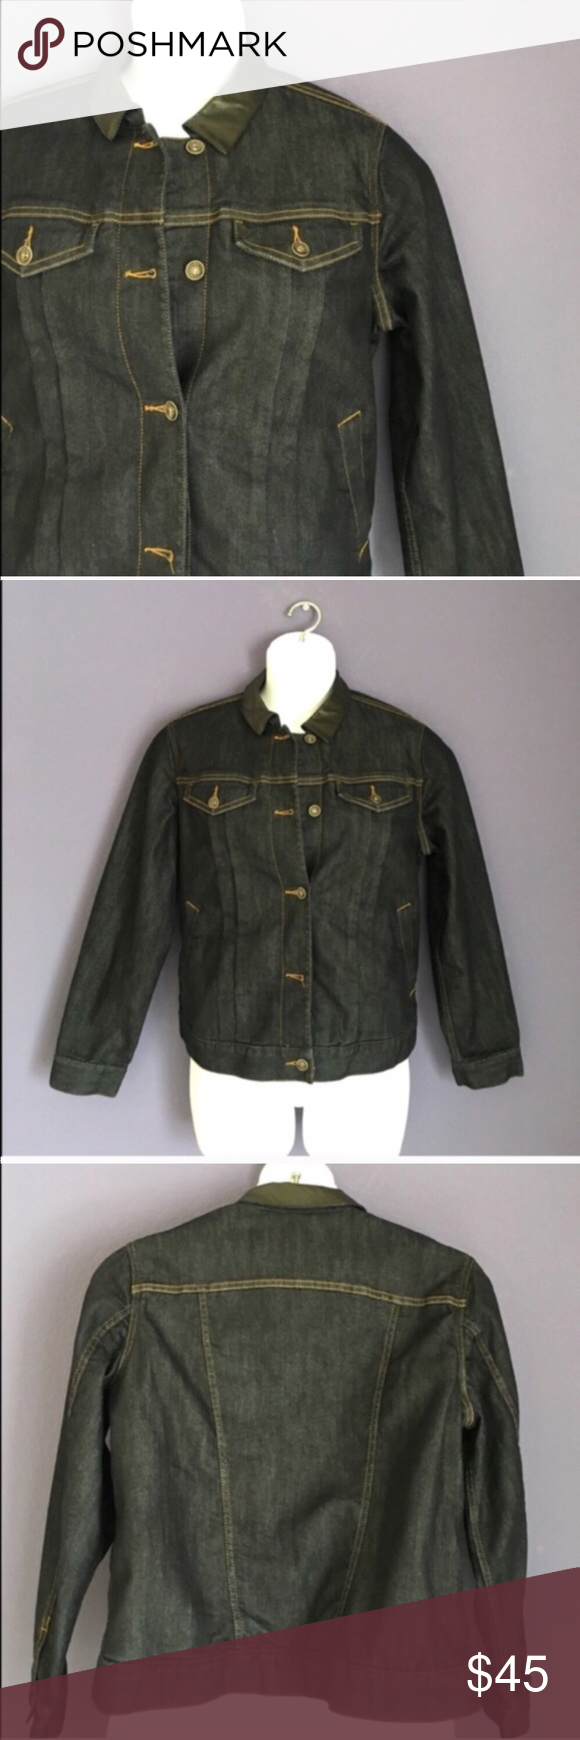 Coldwater creek jean jacket coldwater creek and coats